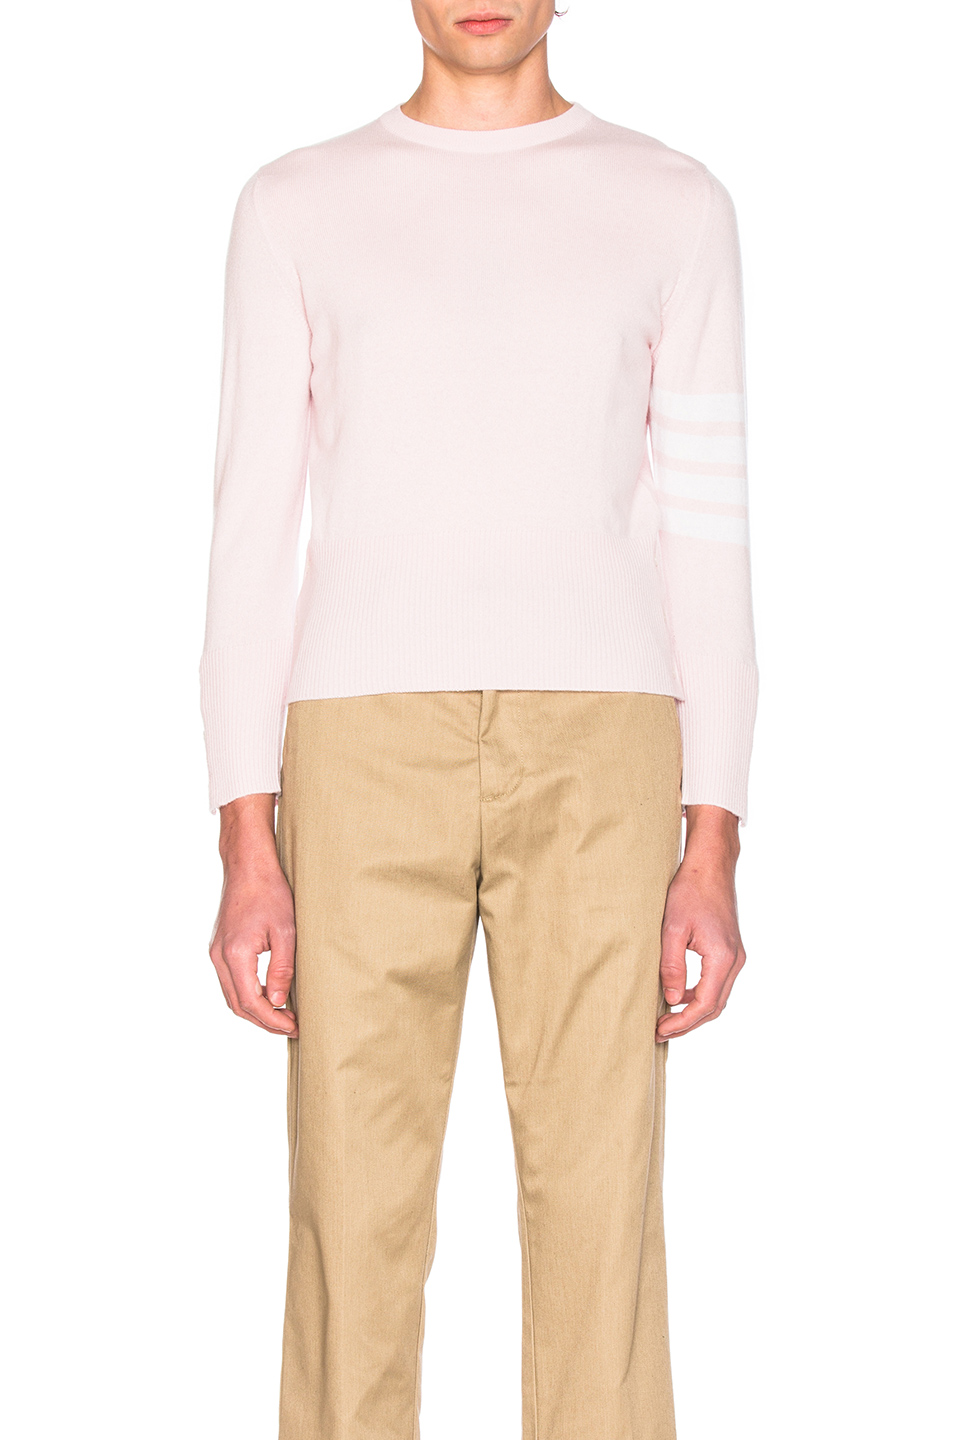 Thom Browne Classic Cashmere Crewneck Sweater in Pink